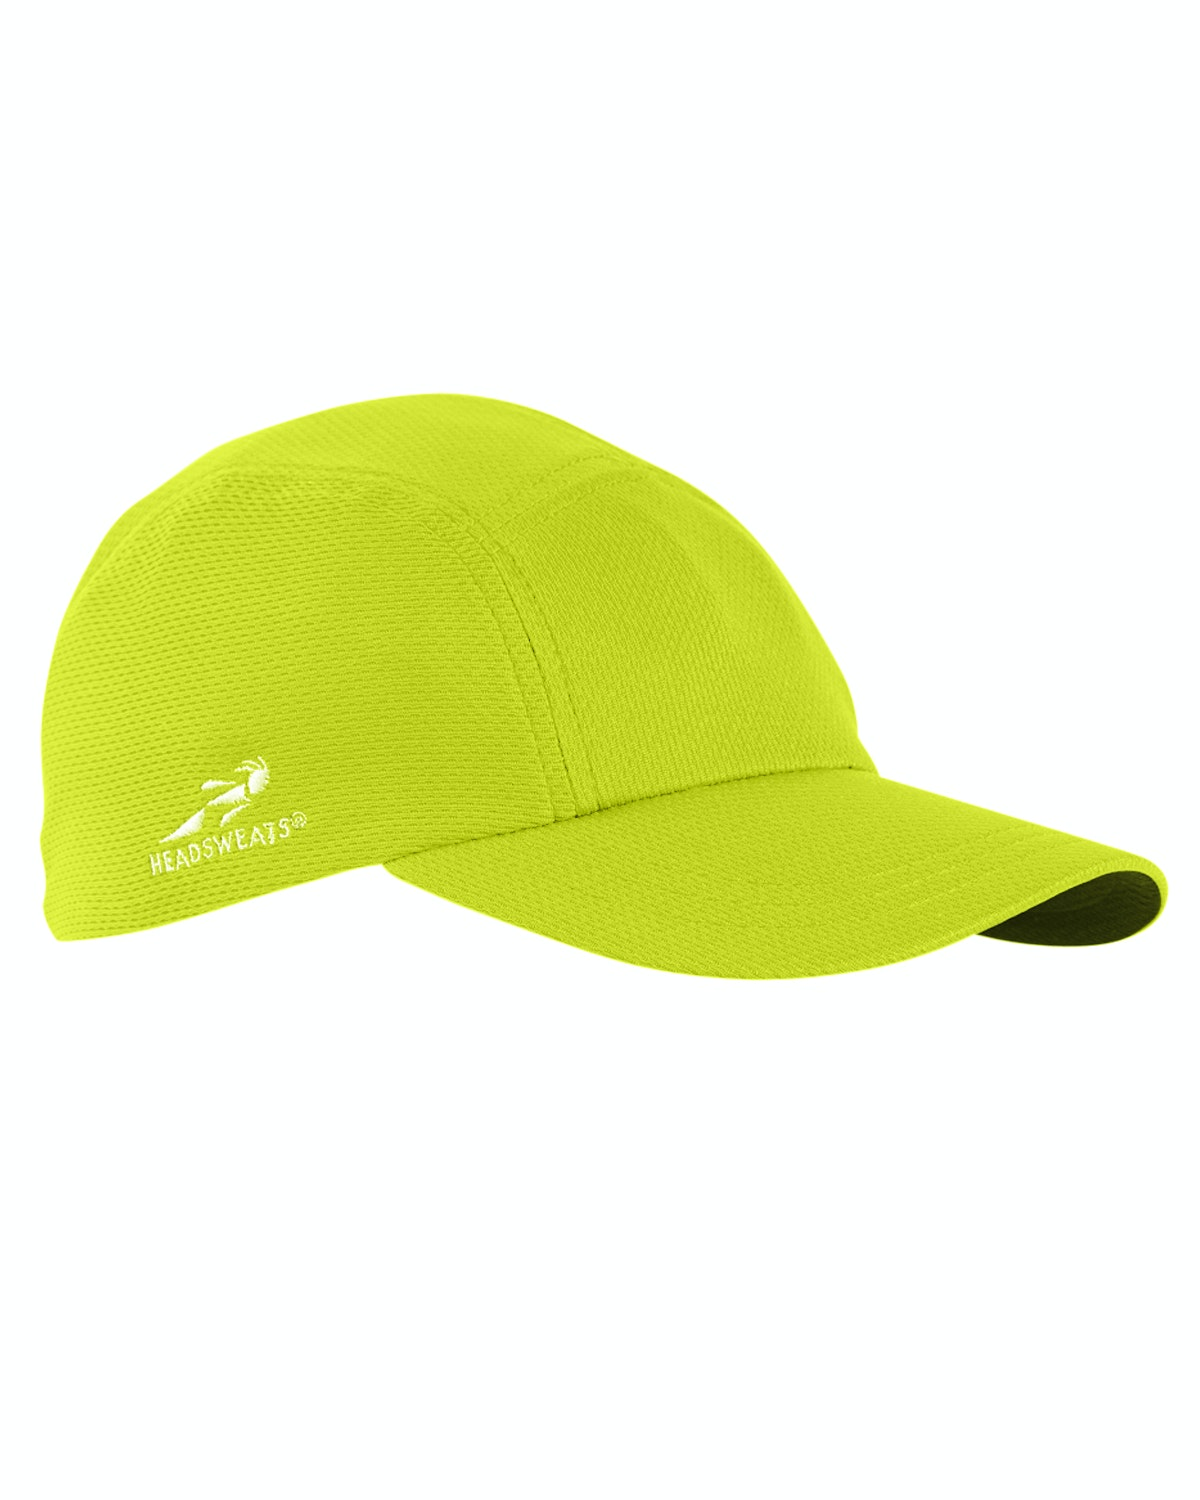 HDSW01 - Sport Safety Yellow